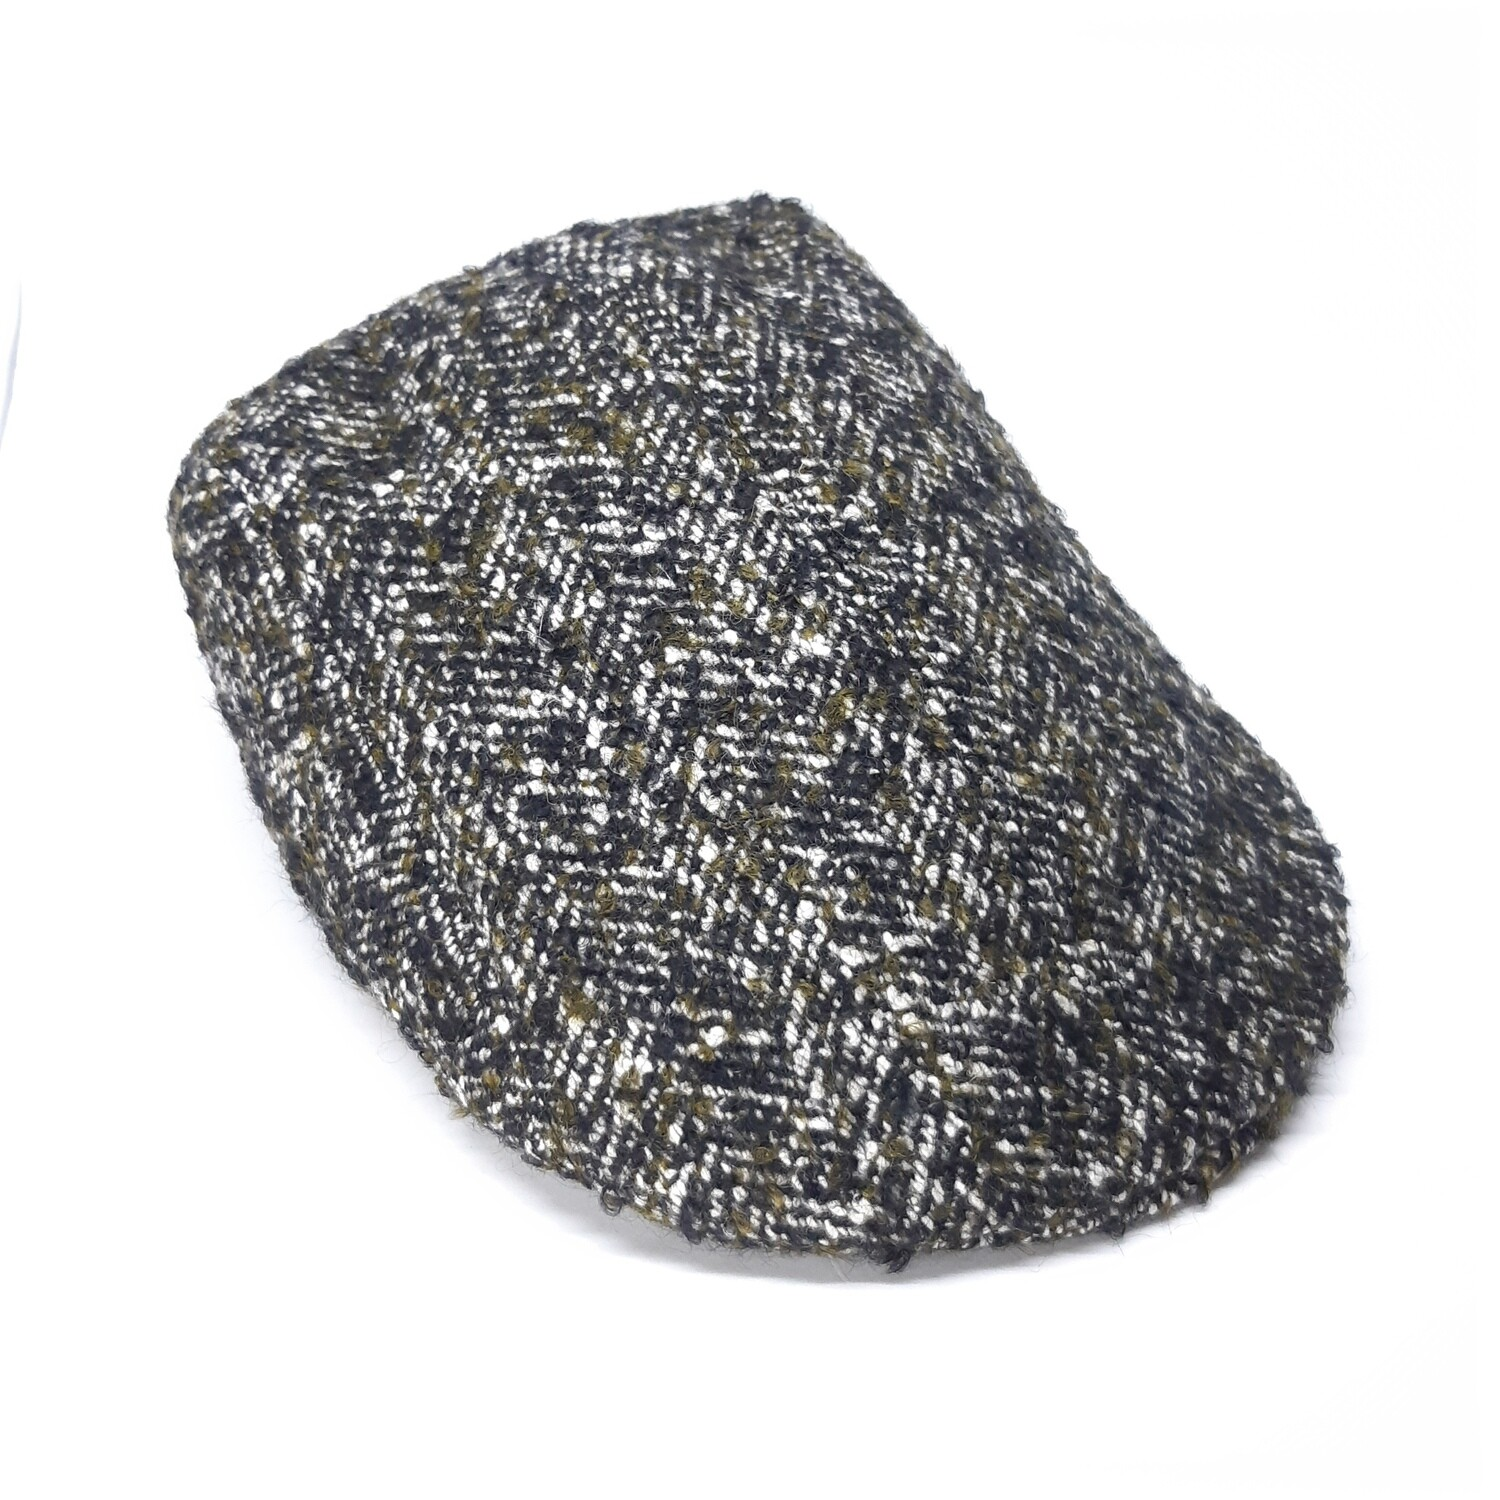 Winter cap in black and olive grey bouclé - mt 57